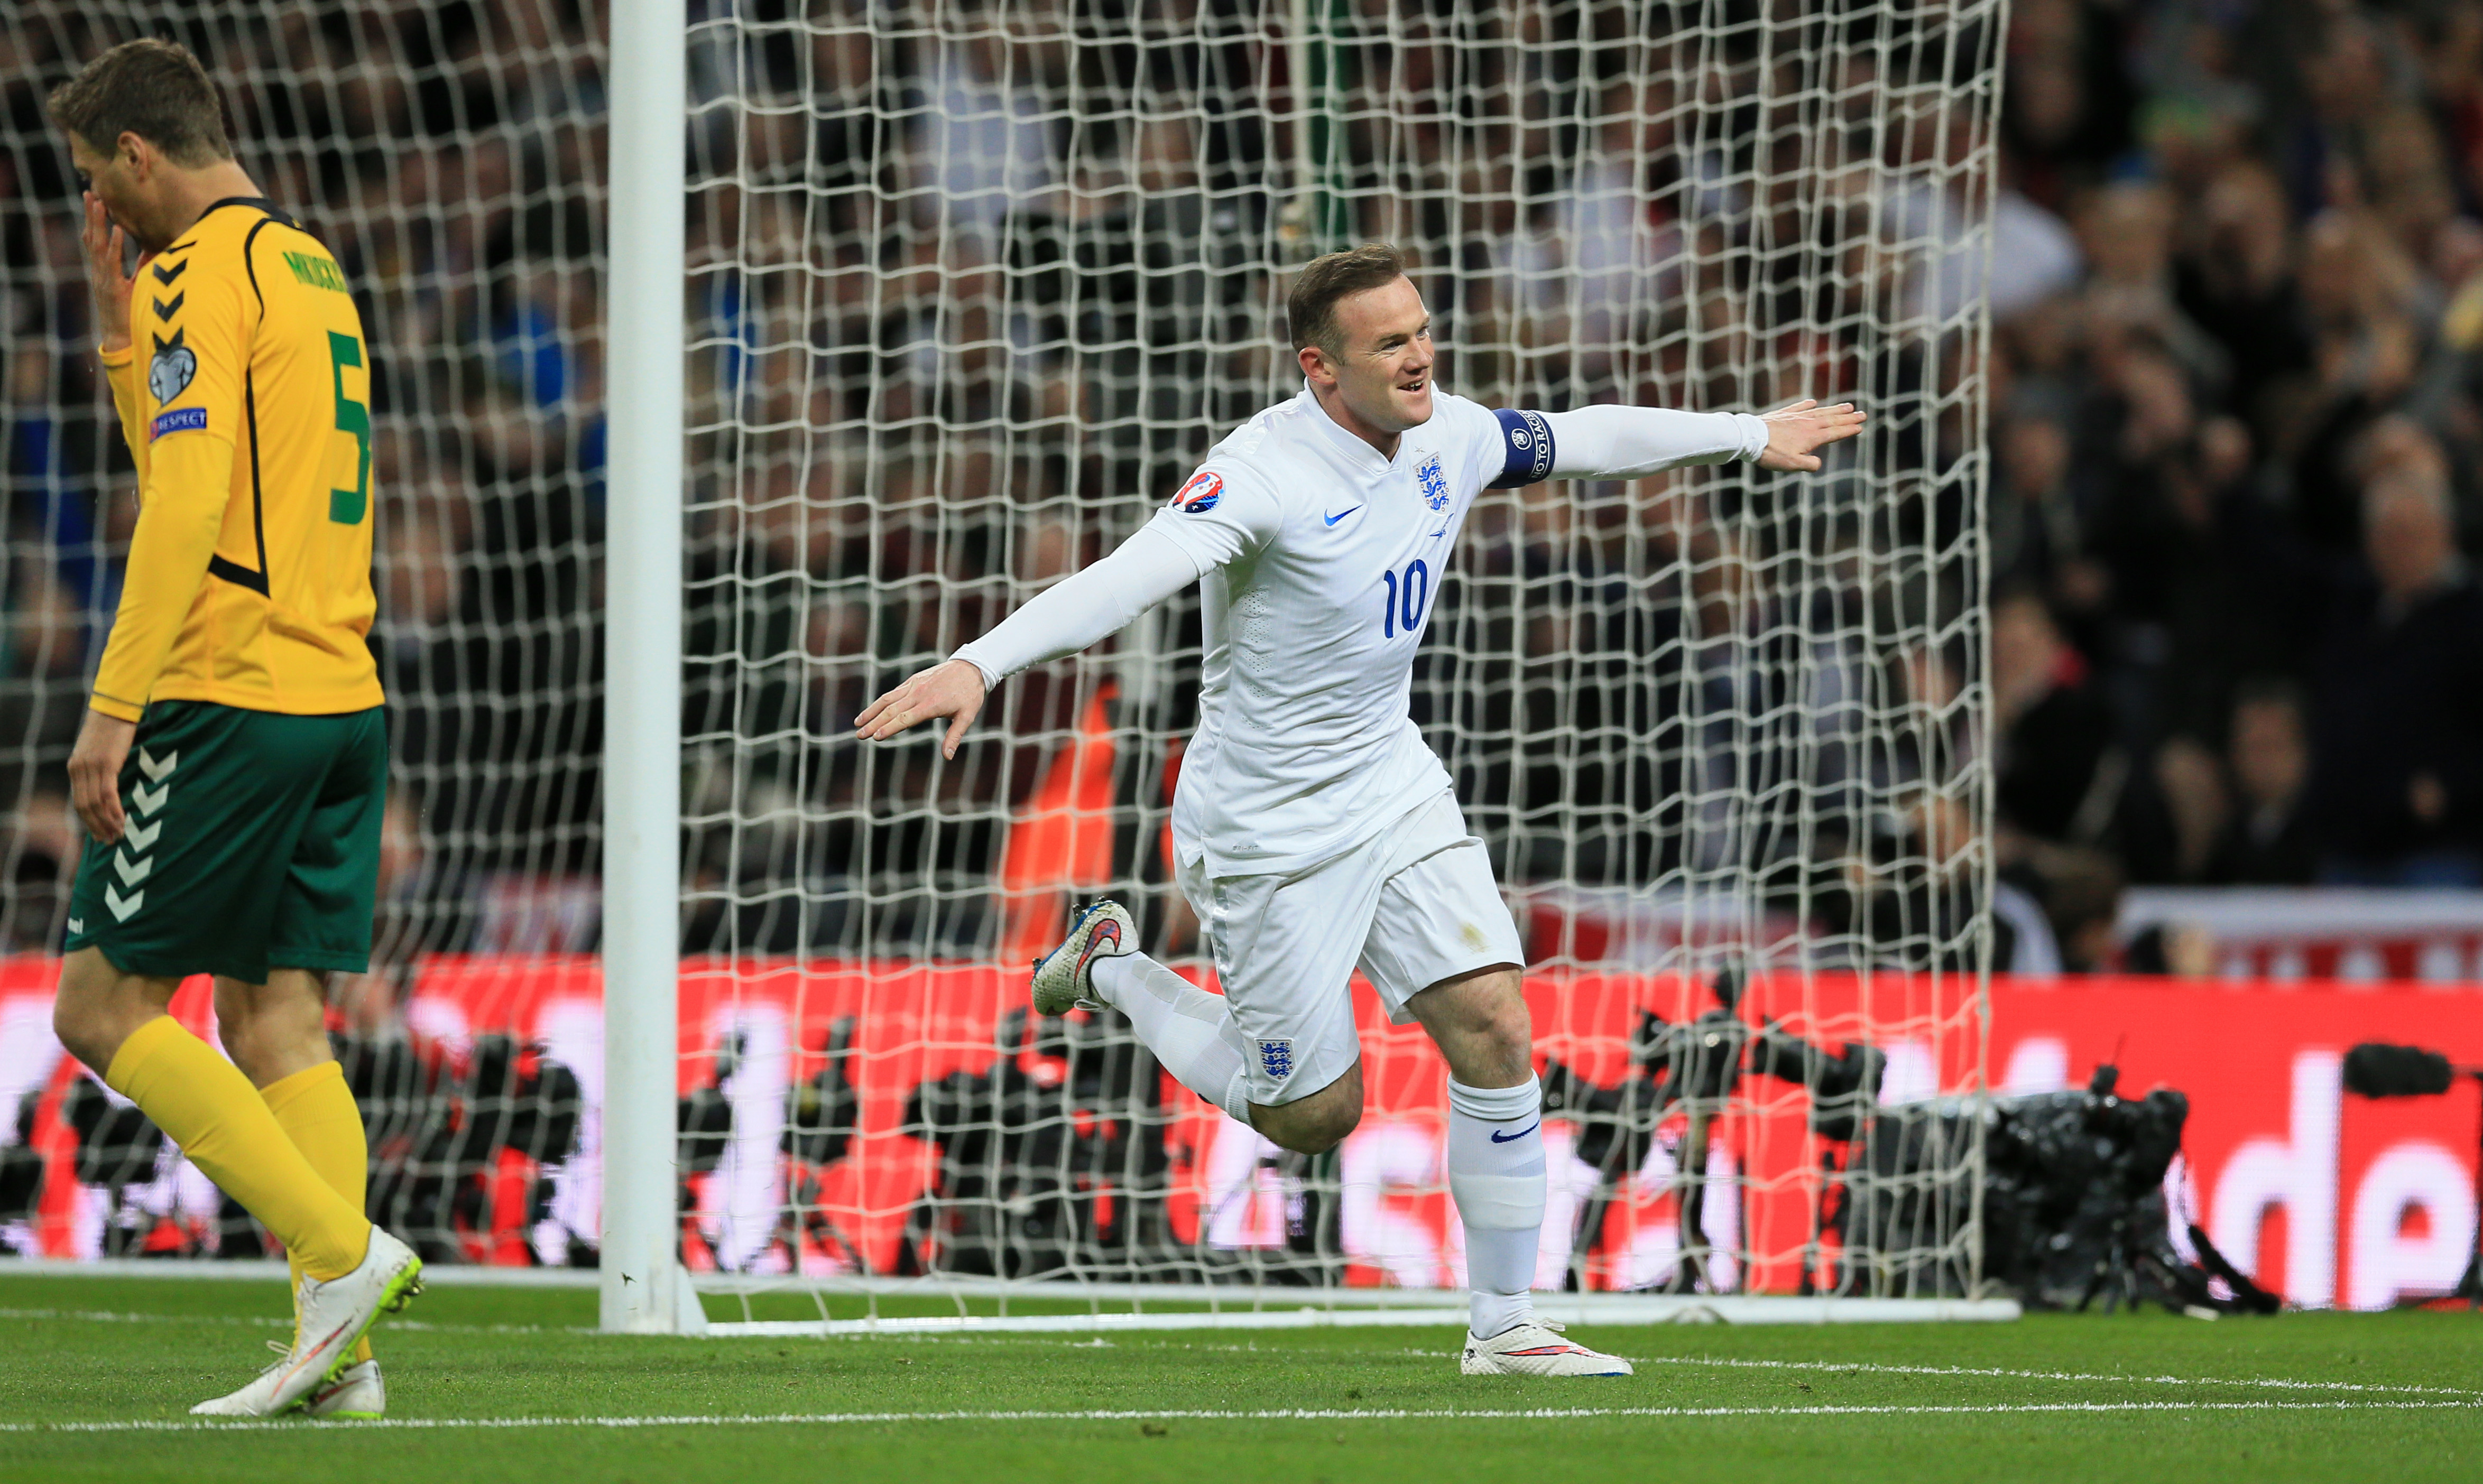 Wayne Rooney scores England's first goal against Lithuania.